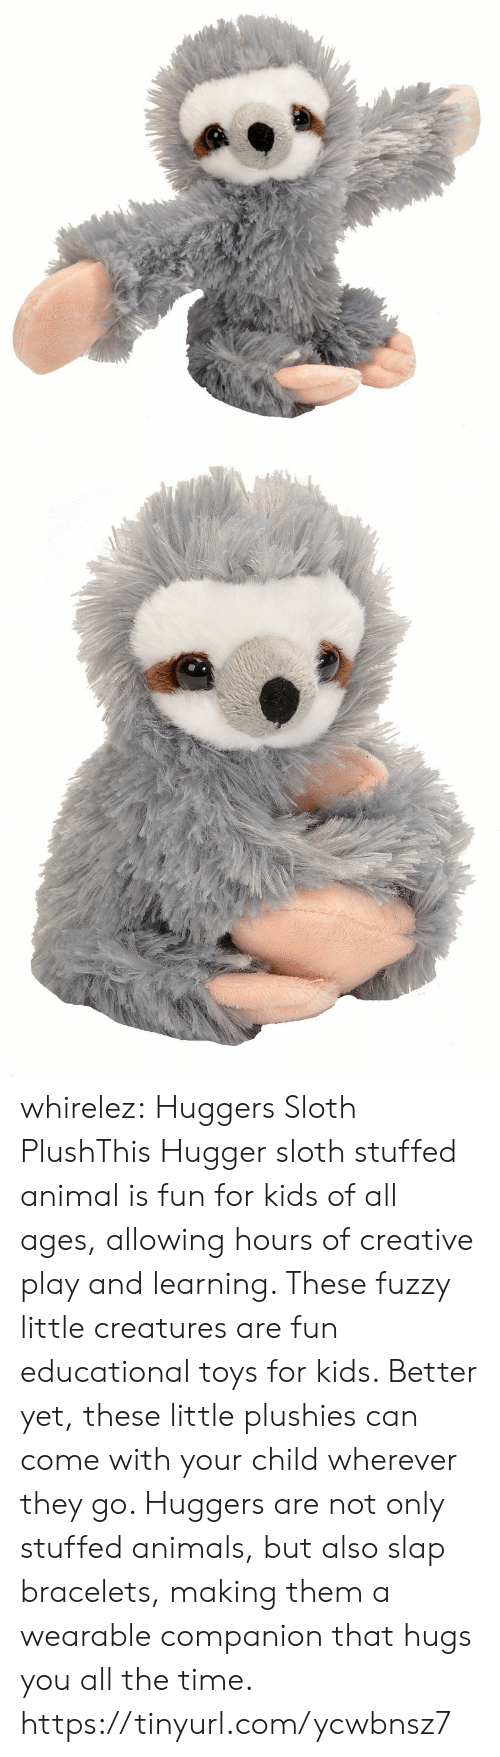 Animals, Tumblr, and Animal: whirelez:  Huggers Sloth PlushThis Hugger sloth stuffed animal is fun for kids of all ages, allowing hours of creative play and learning. These fuzzy little creatures are fun educational toys for kids. Better yet, these little plushies can come with your child wherever they go. Huggers are not only stuffed animals, but also slap bracelets, making them a wearable companion that hugs you all the time. https://tinyurl.com/ycwbnsz7